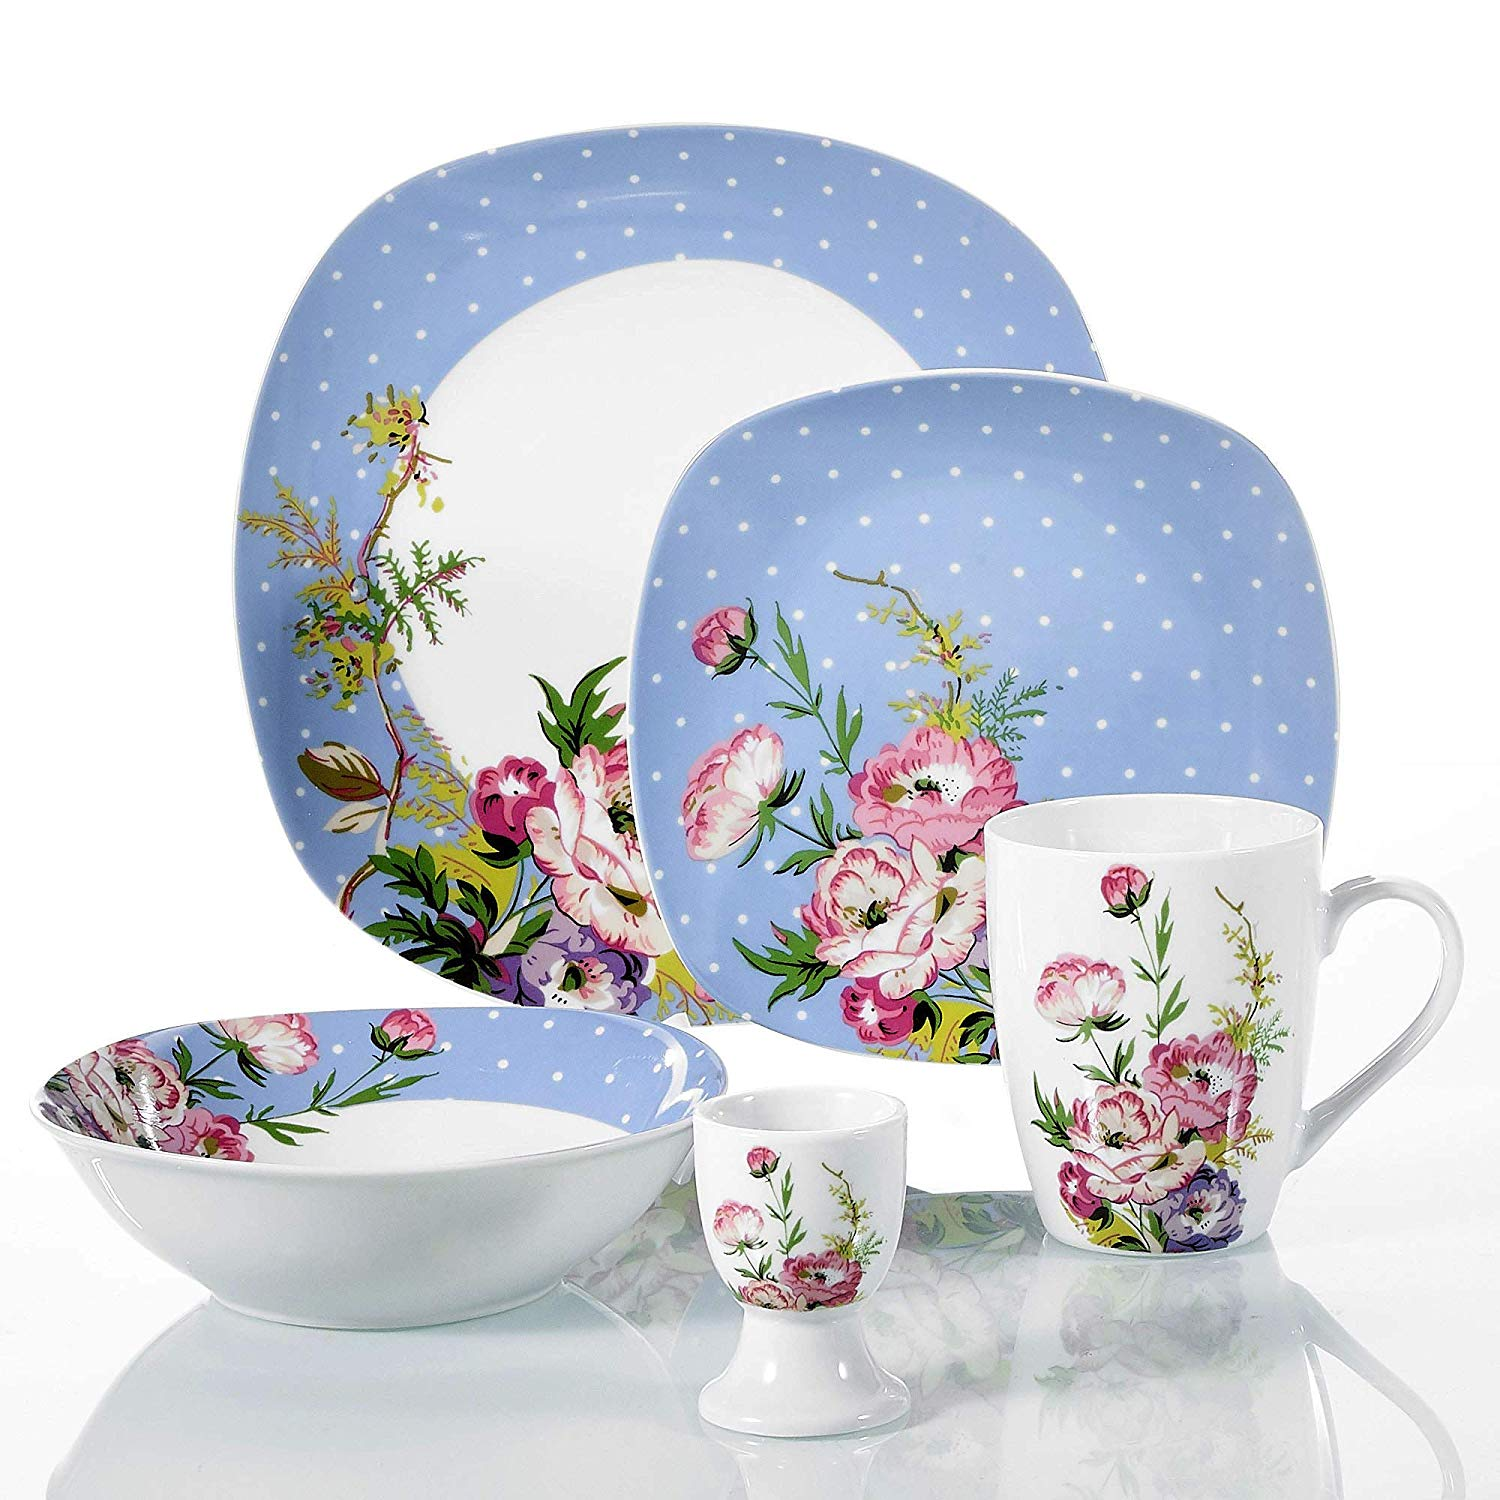 VEWEET Hannah 40-Piece Porcelain Dinner Set Blue White Dots Pink Flower Pattern Breakfast Combination Set Service for 8 Person with Egg Cup Mug Bowl Dessert Plate and Dinner Plate